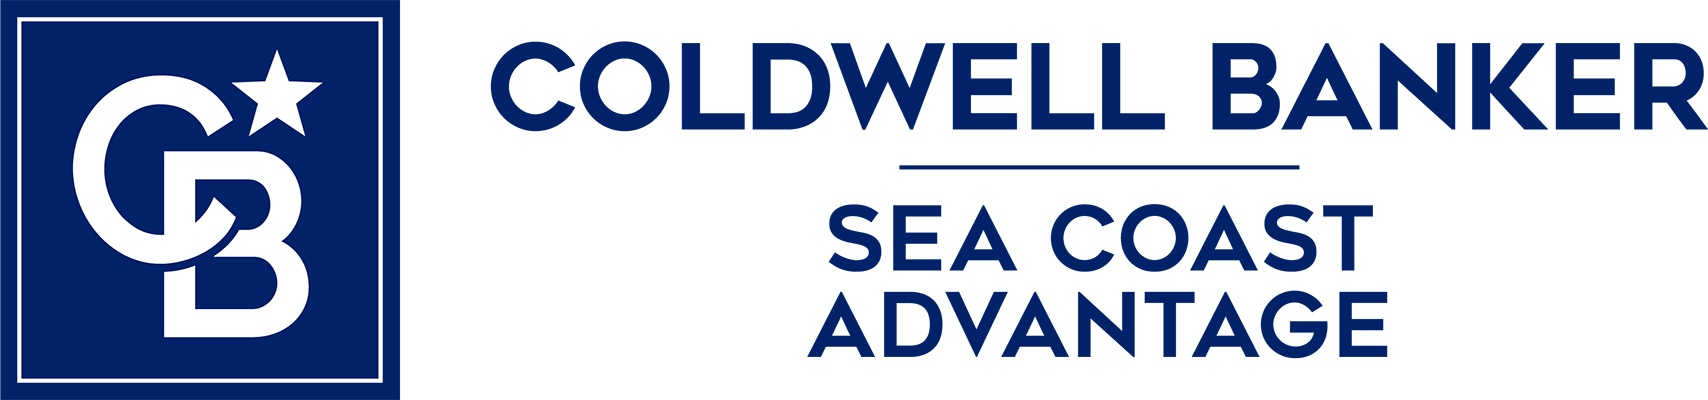 Amannda McClellan - Coldwell Banker Sea Coast Advantage Realty